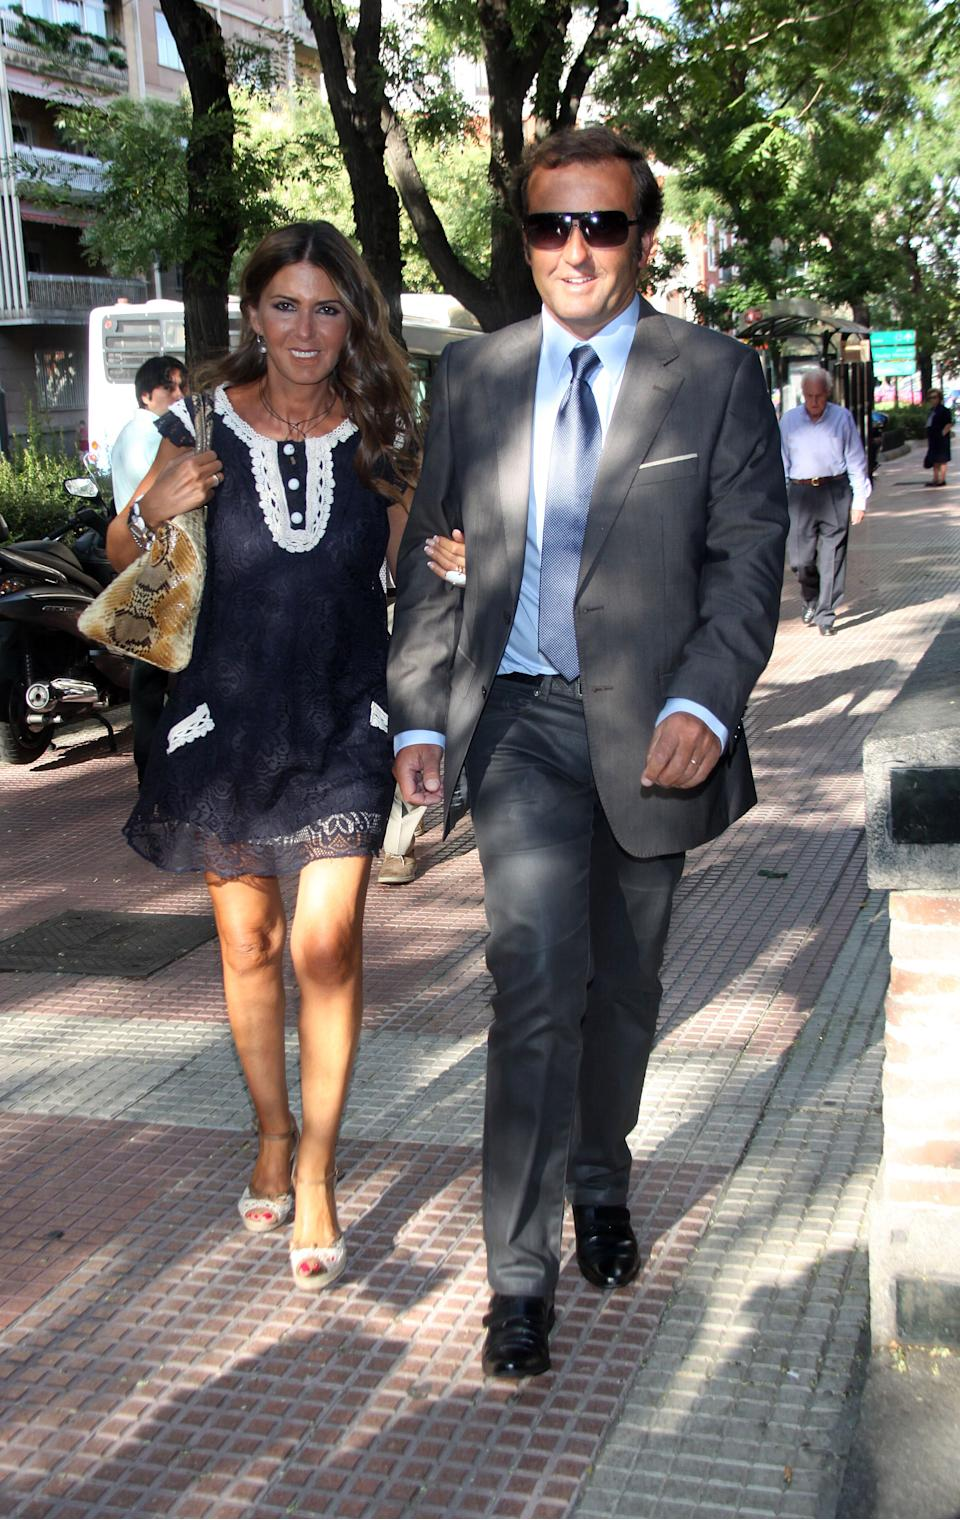 MADRID, SPAIN - JULY 14: Marisa Martin Blazquez and Antonio Montero attend the memorial for Eduardo Sanchez Junco, editor-in-chief of 'Hola' magazine on July 14, 2011 in Madrid, Spain. The owner and publisher of the celebrity magazines 'Hola!' and 'Hello!,' Eduardo Sanchez Junco, died on July 14, 2010 after a long illness, at the age of 67.  (Photo by Europa Press/Europa Press via Getty Images)